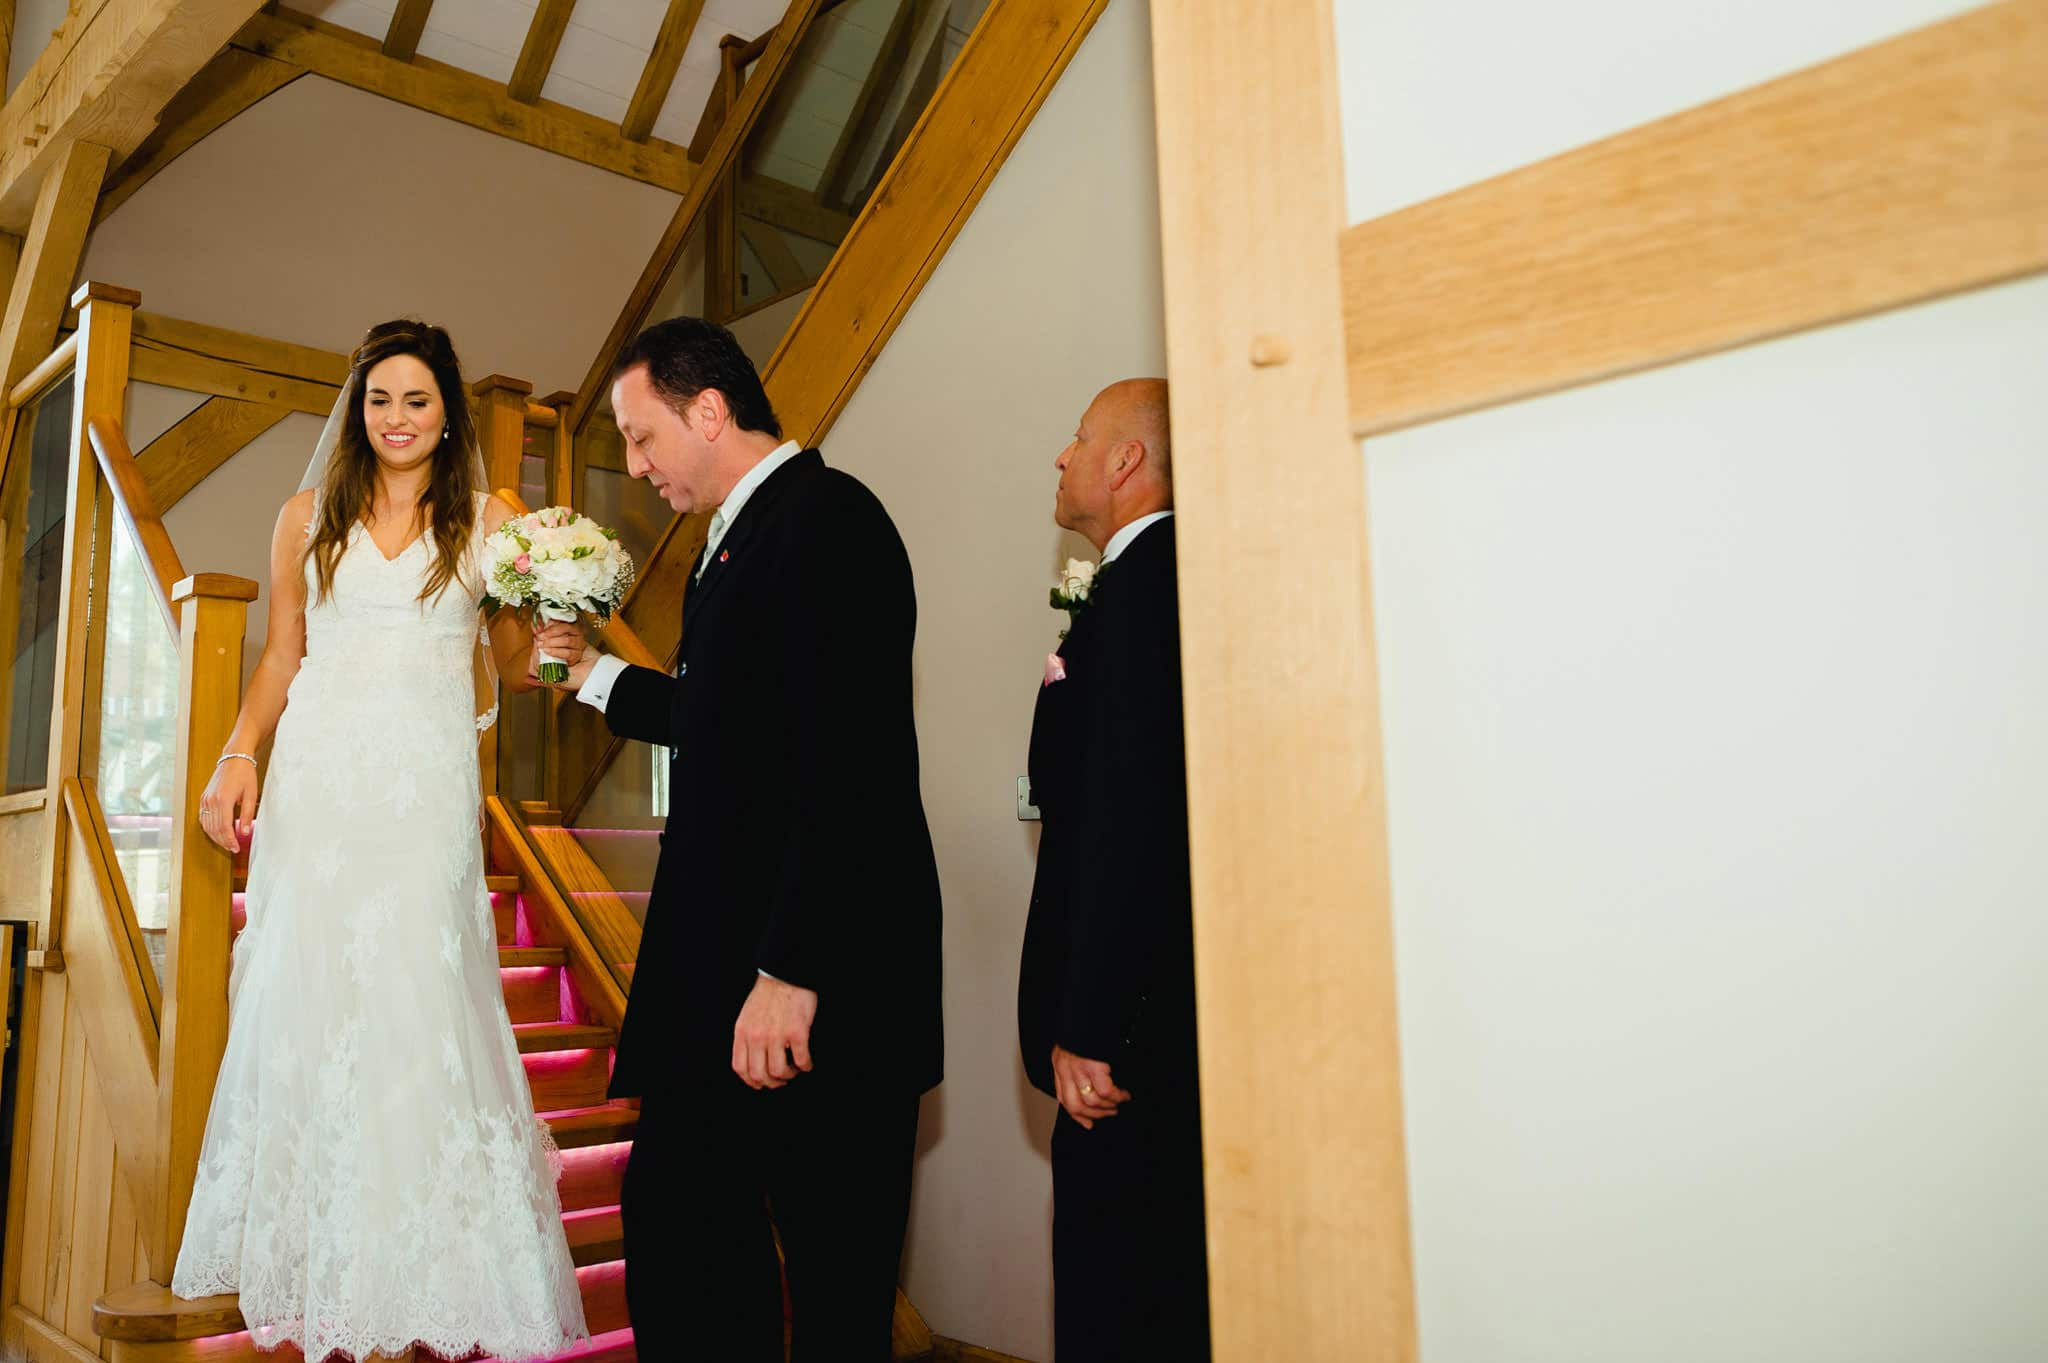 Wedding at Redhouse Barn in Stoke Prior, Worcestershire 54